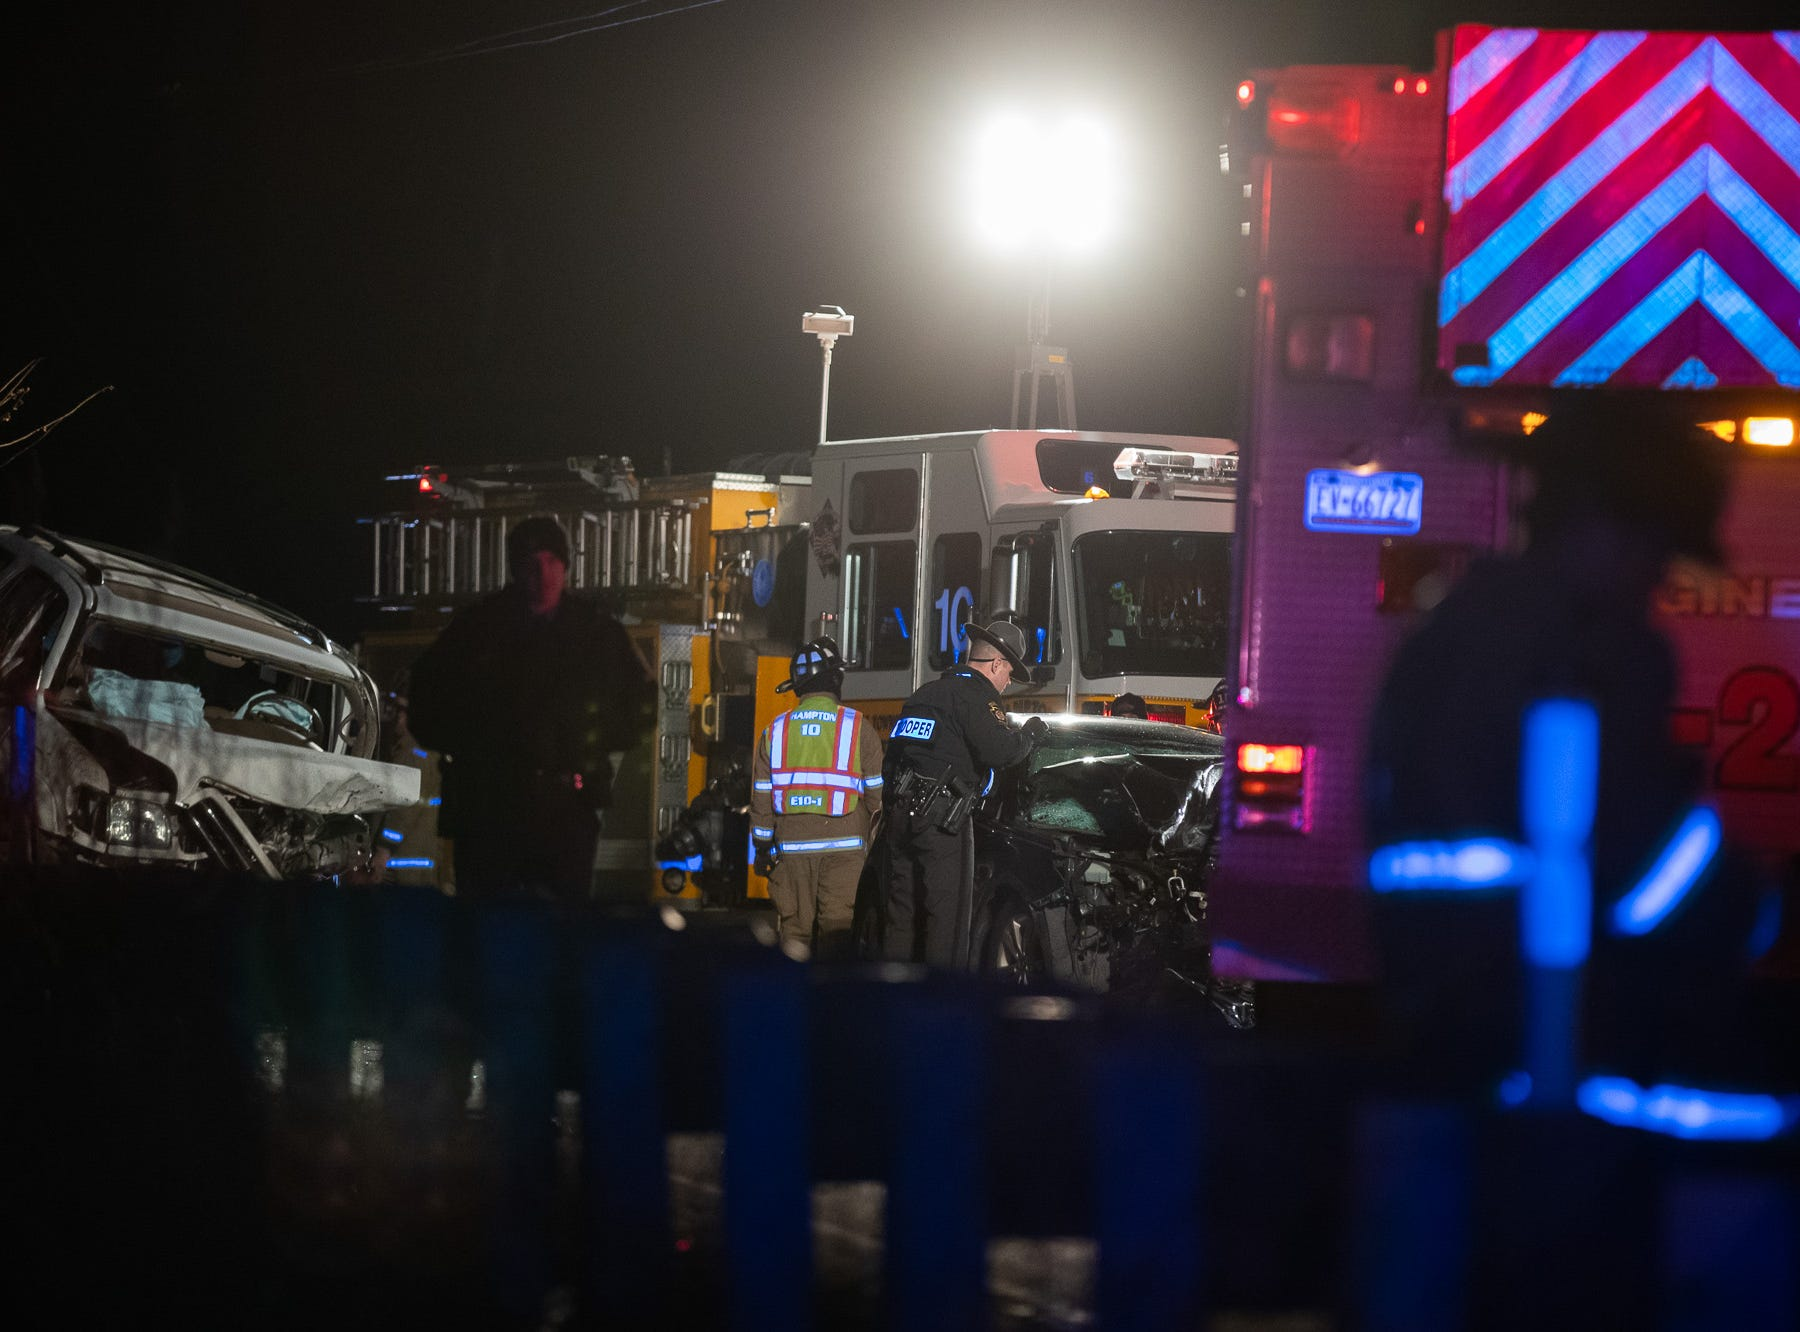 Firefighters and police work at the scene of a crash on the 2200 block of East Berlin Road, Monday, Dec. 24, 2018, in Reading Township.